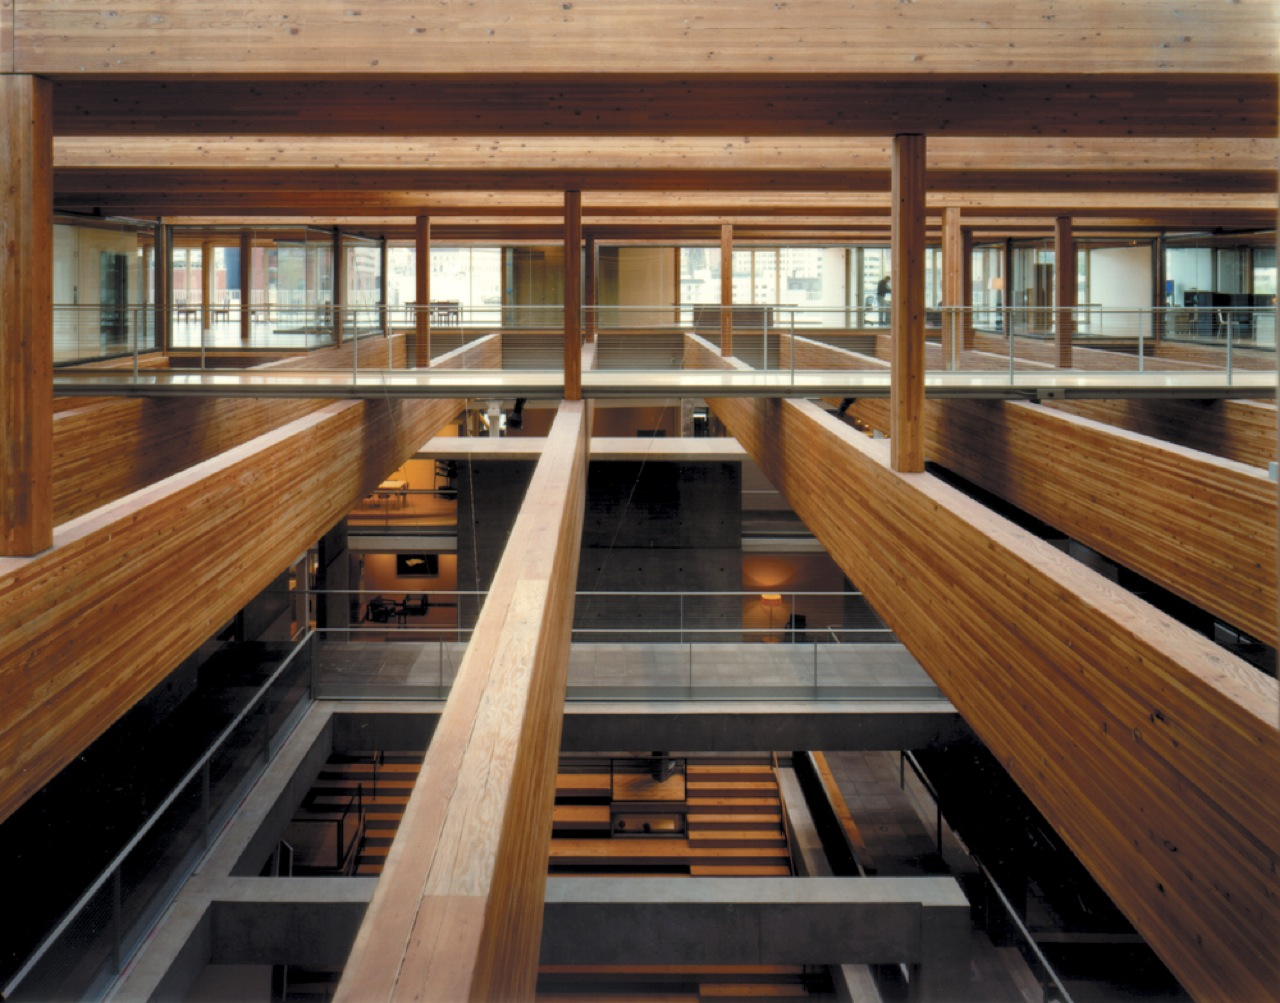 Wieden+Kennedy Headquarters / Allied Works Architecture, Courtesy of  allied works architecture